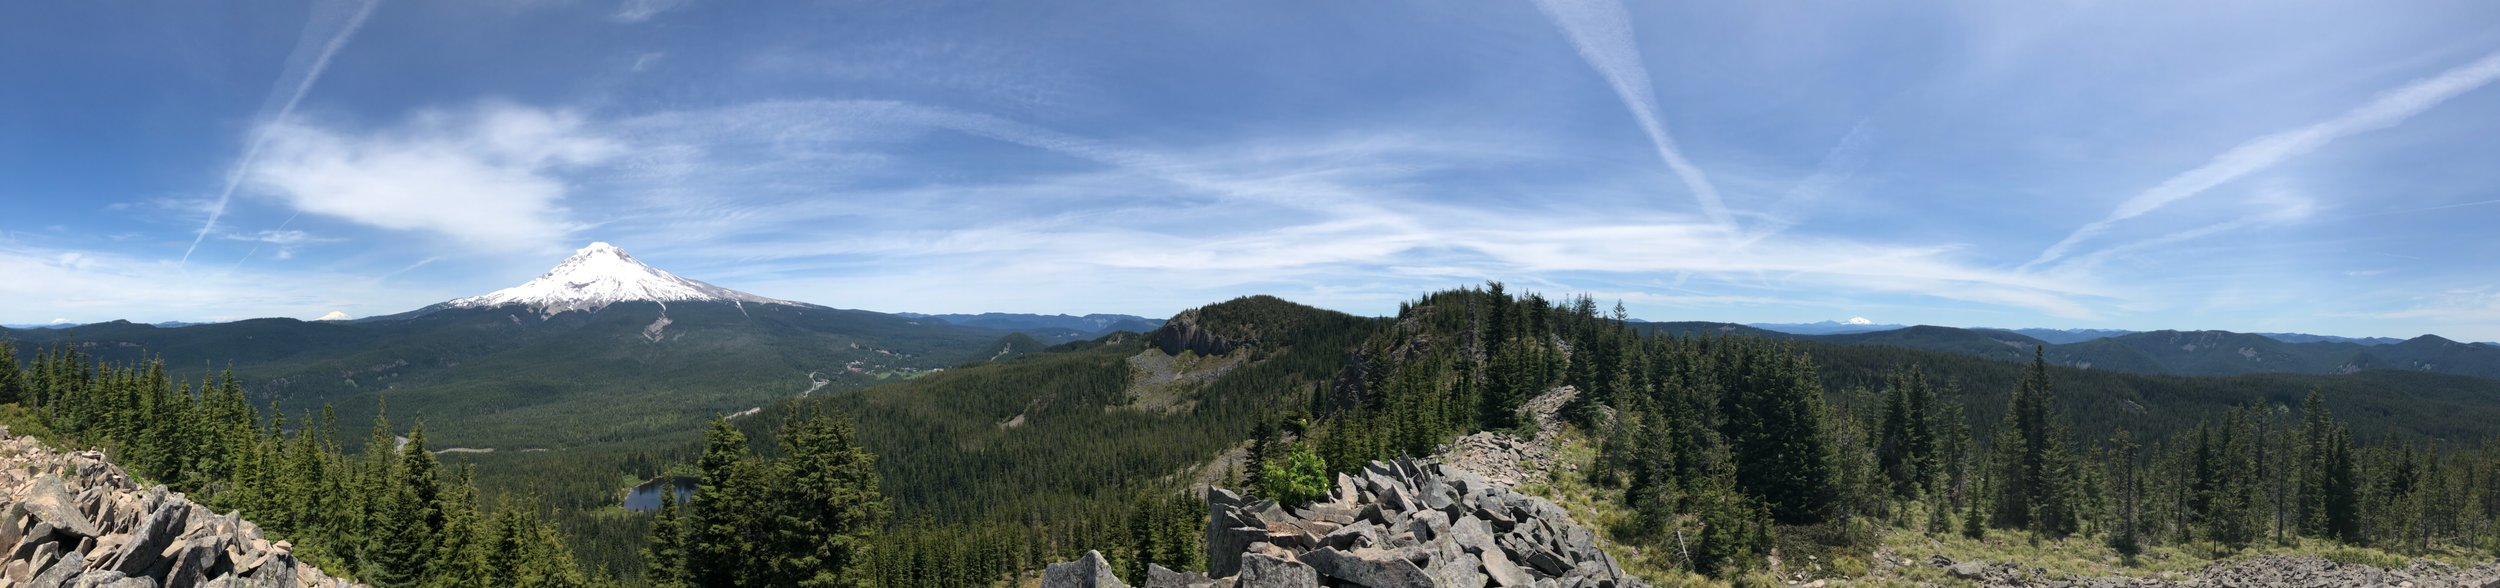 From the top of the mountain! If you zoom in, you can see the following (left to right): Mt. Saint Helens, Mt. Rainier, Mt. Adams, Mt. Hood (the big one!), and Mt. Jefferson. I am so lucky that I did this hike on Tuesday - the following two days were rainy and foggy and I wouldn't have been able to see with such clear visibility.